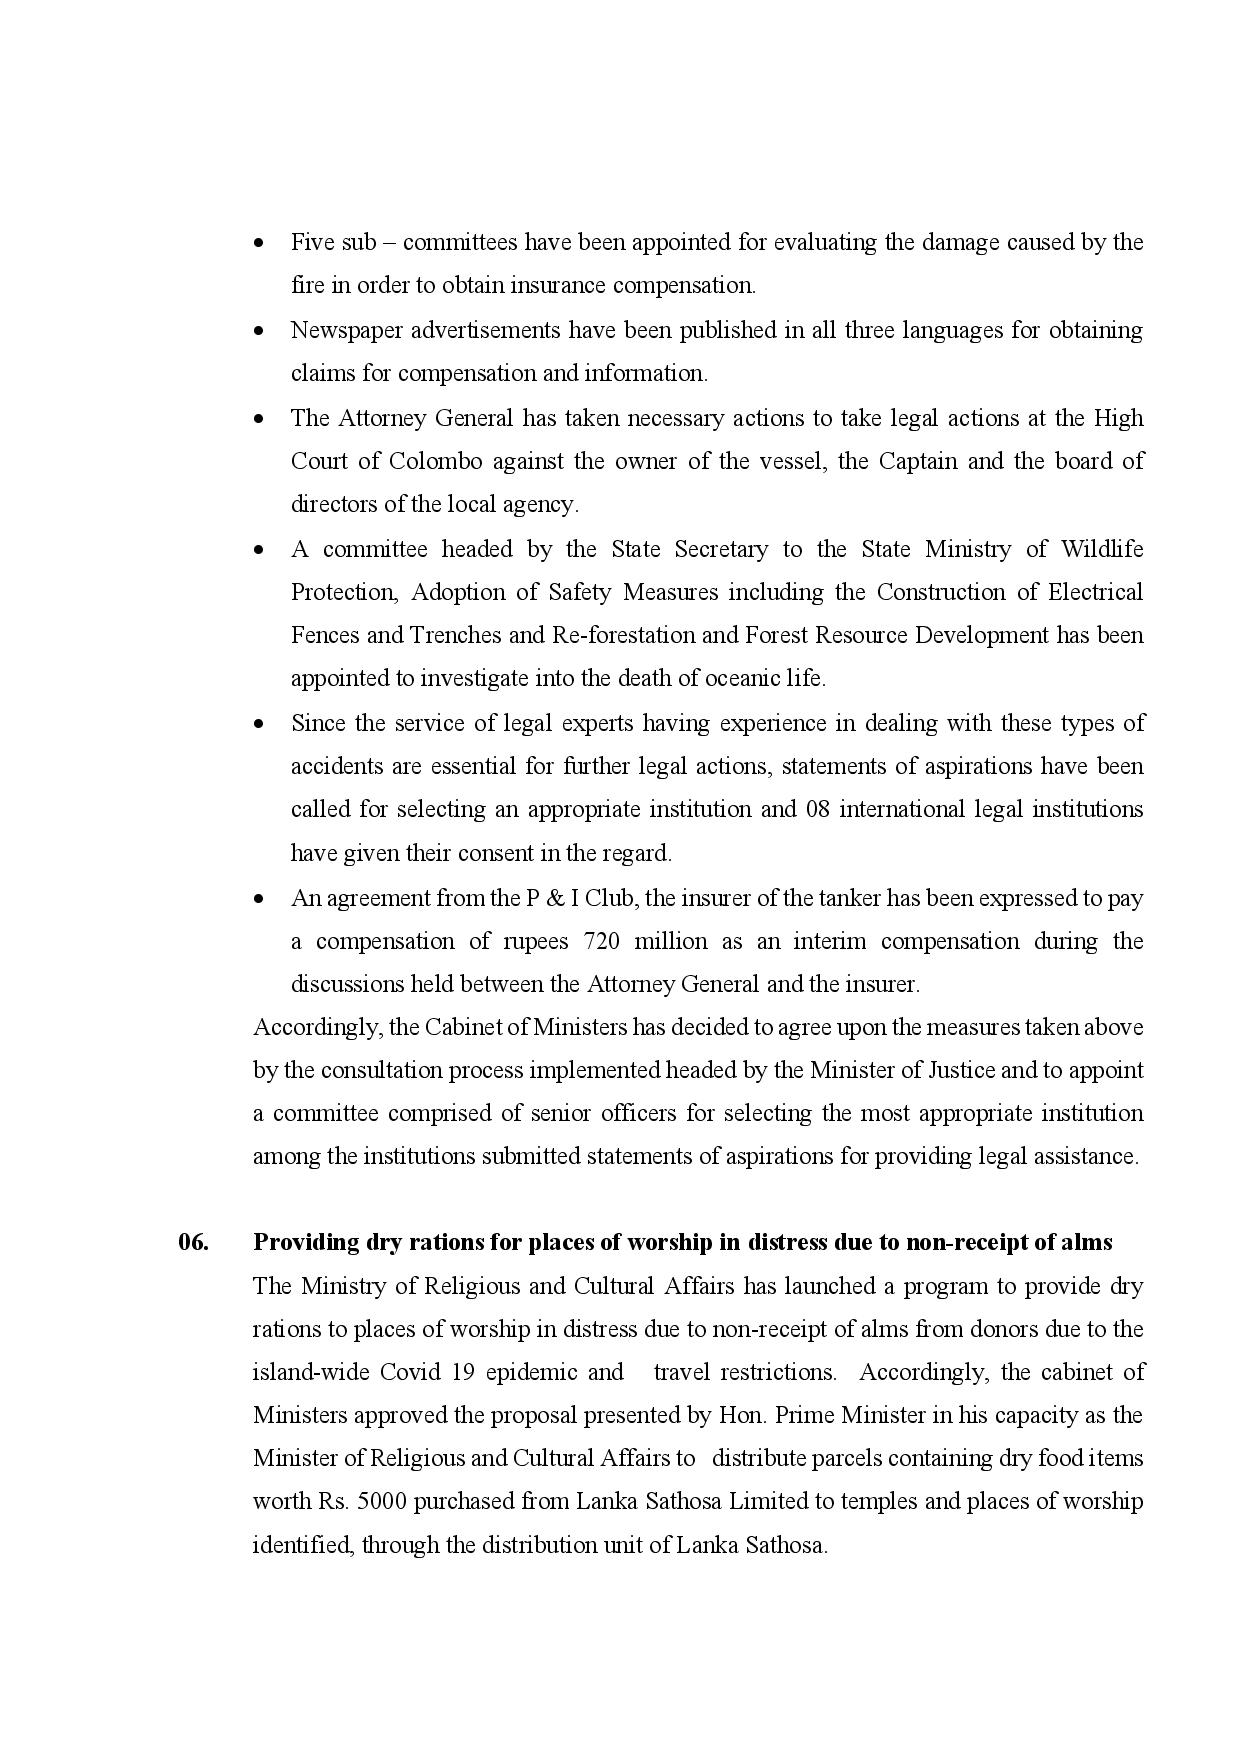 Cabinet Decision on 28.06.2021 English page 003